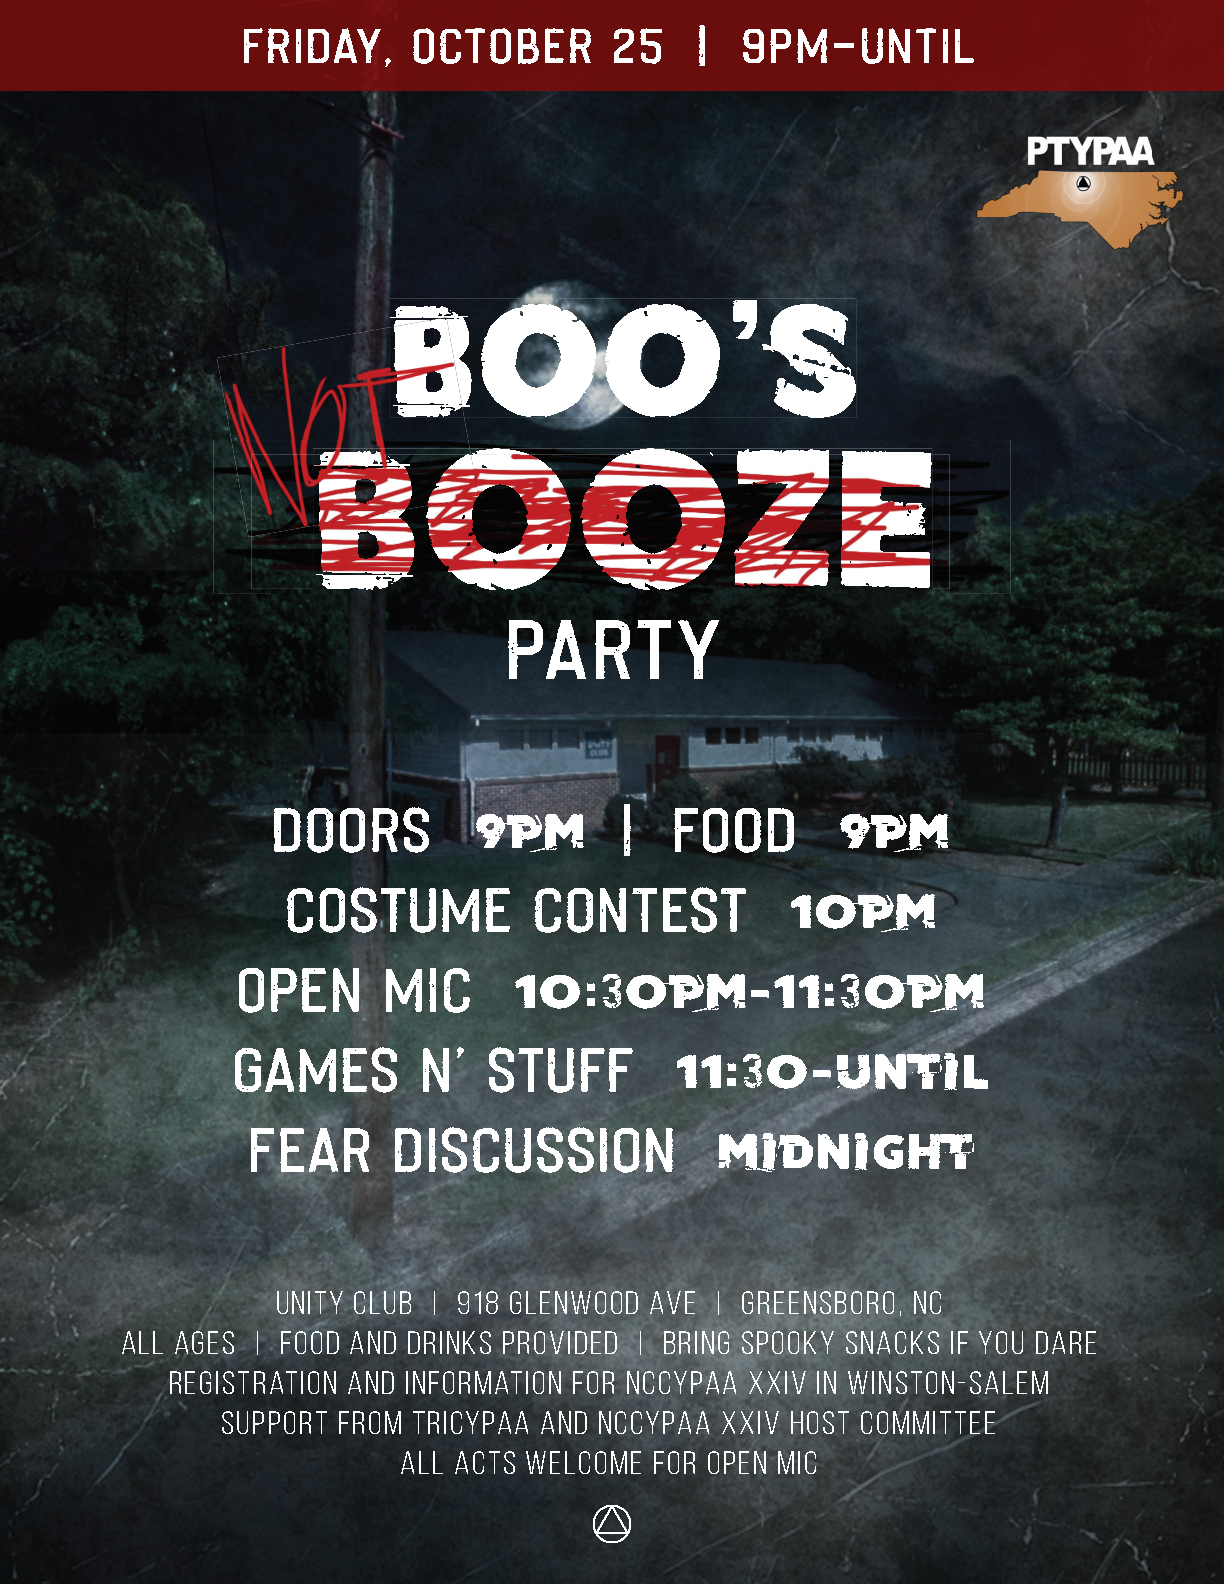 Boos not Booze - PTYPAA Halloween Party @ Unity Club